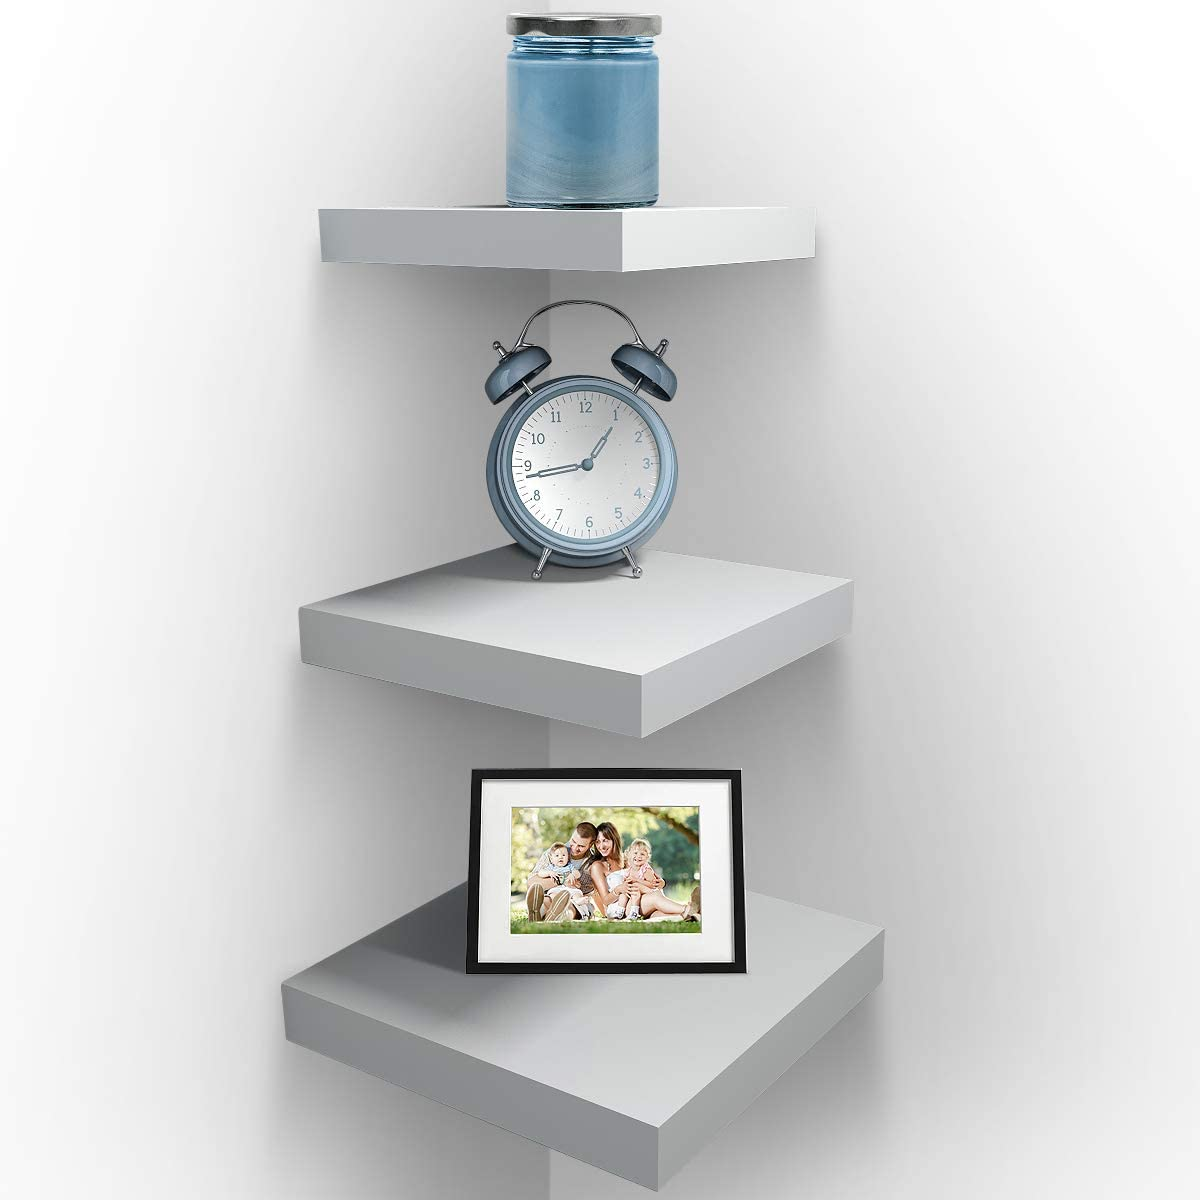 Sorbus Wall Mount Corner Shelves, Square Hanging Wall Shelves Decoration, Perfect Trophy Display, Photo Frames, Home Décor, Set of 3 (3-Piece Square Set - White)